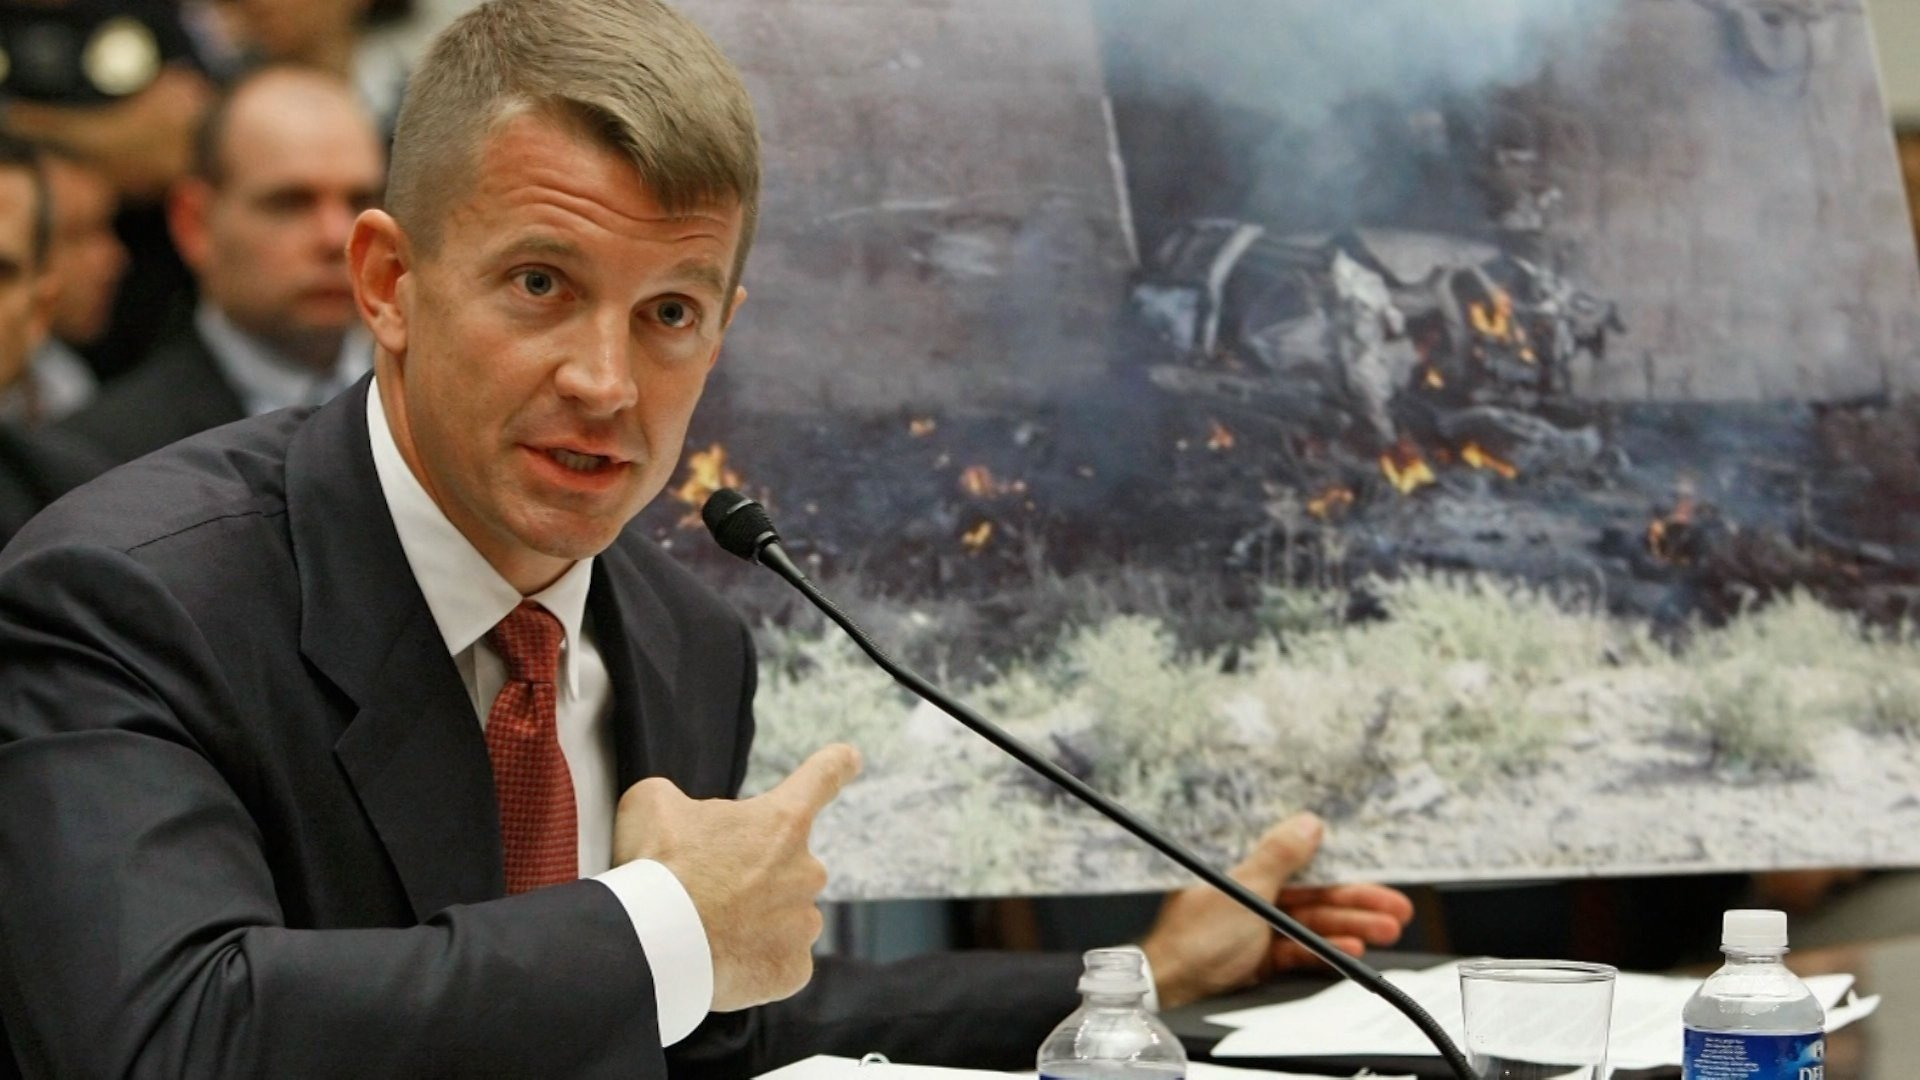 Blackwater founder Erik Prince will host a fundraiser this month for Russia-friendly Republican Rep. Dana Rohrabacher, as Prince faces new questions over a 2017 meeting currently being investigated by special counsel Robert Mueller.